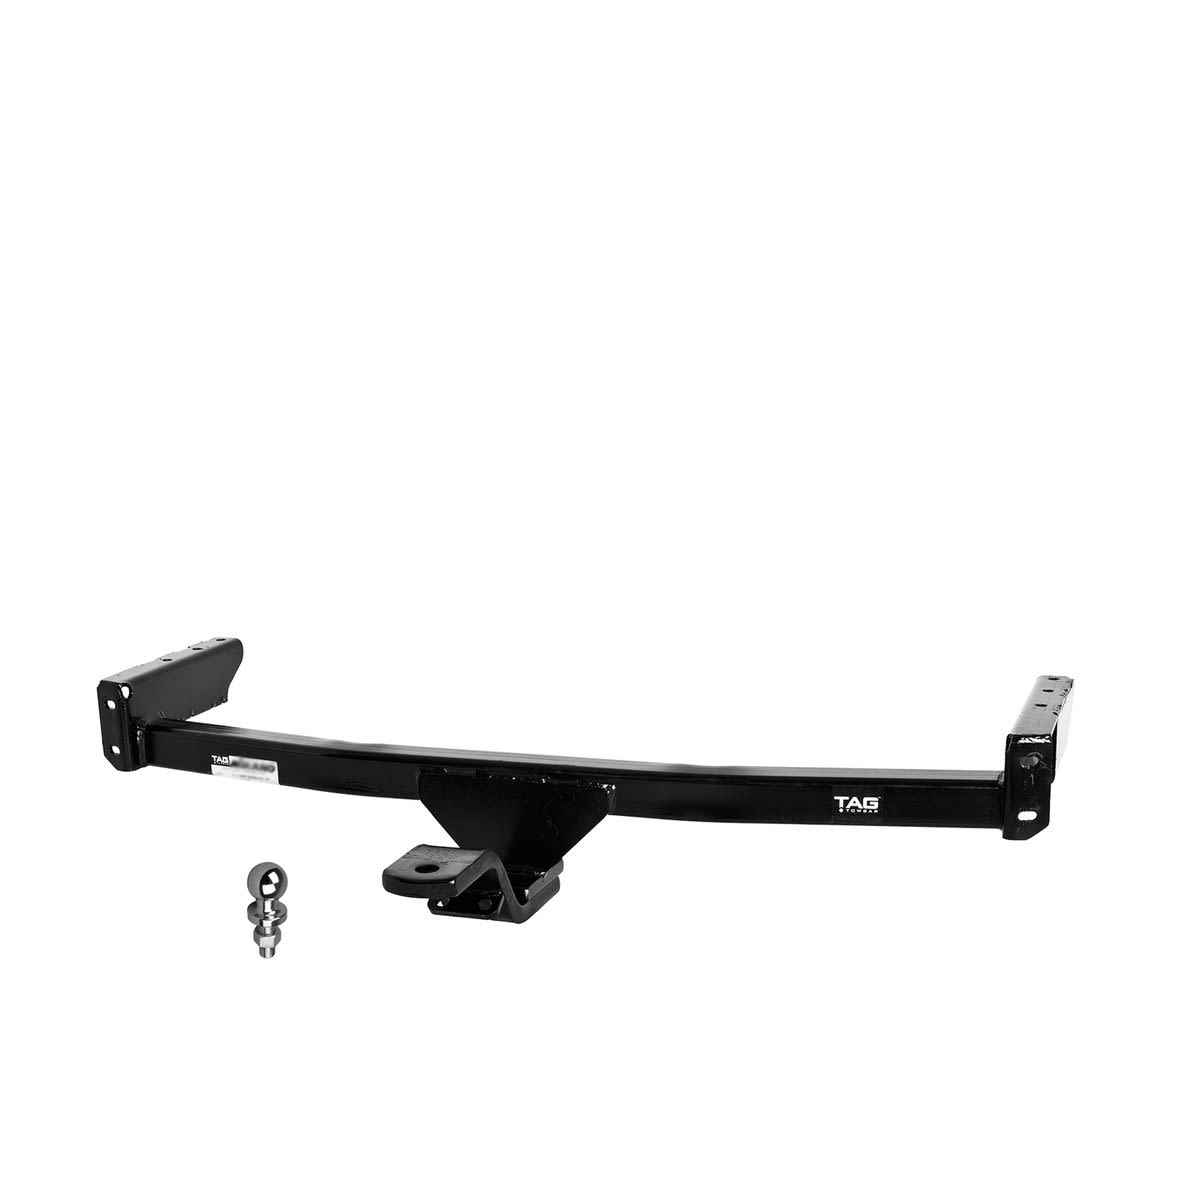 TAG Towbar to suit KIA Cerato (08/2013 - 04/2018) - Universal Bypass Harness with 7 Pin Flat Plug